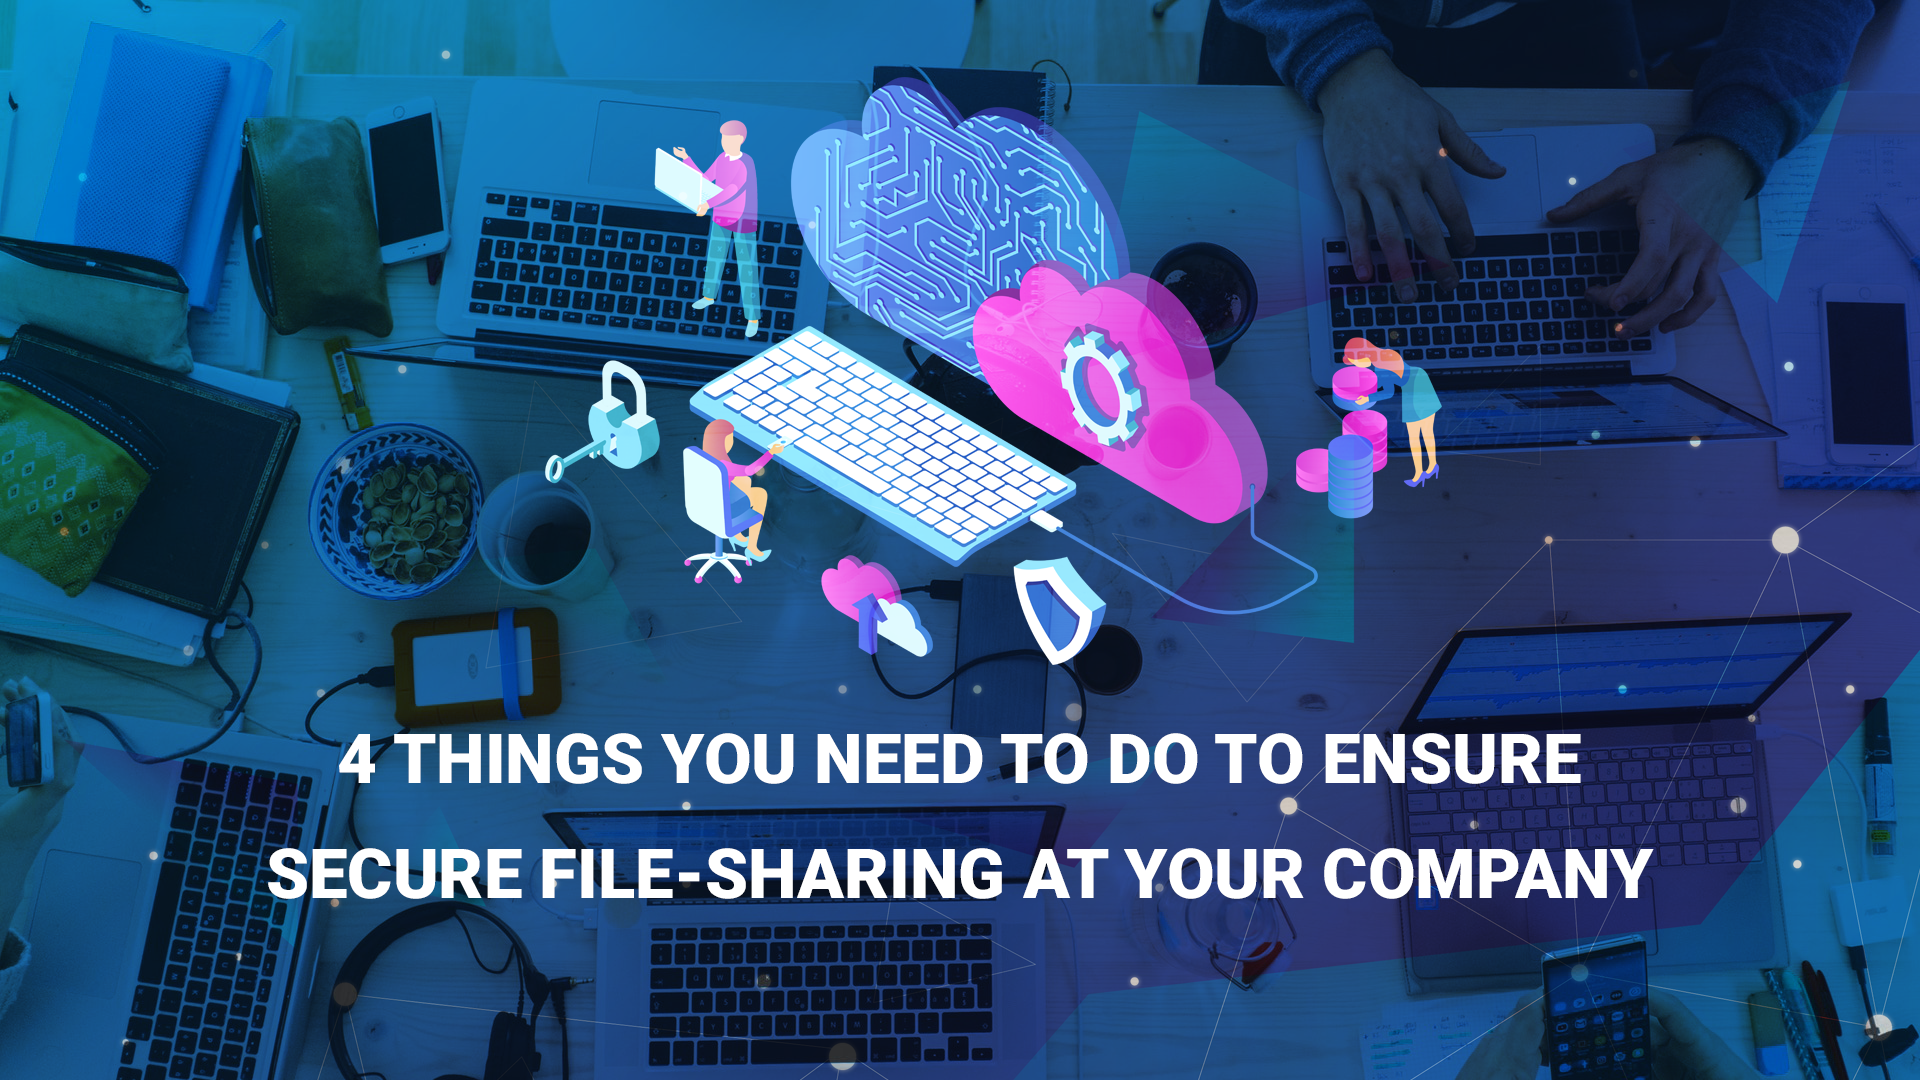 4 Things You Need to Do to Ensure Secure File-Sharing at Your Company